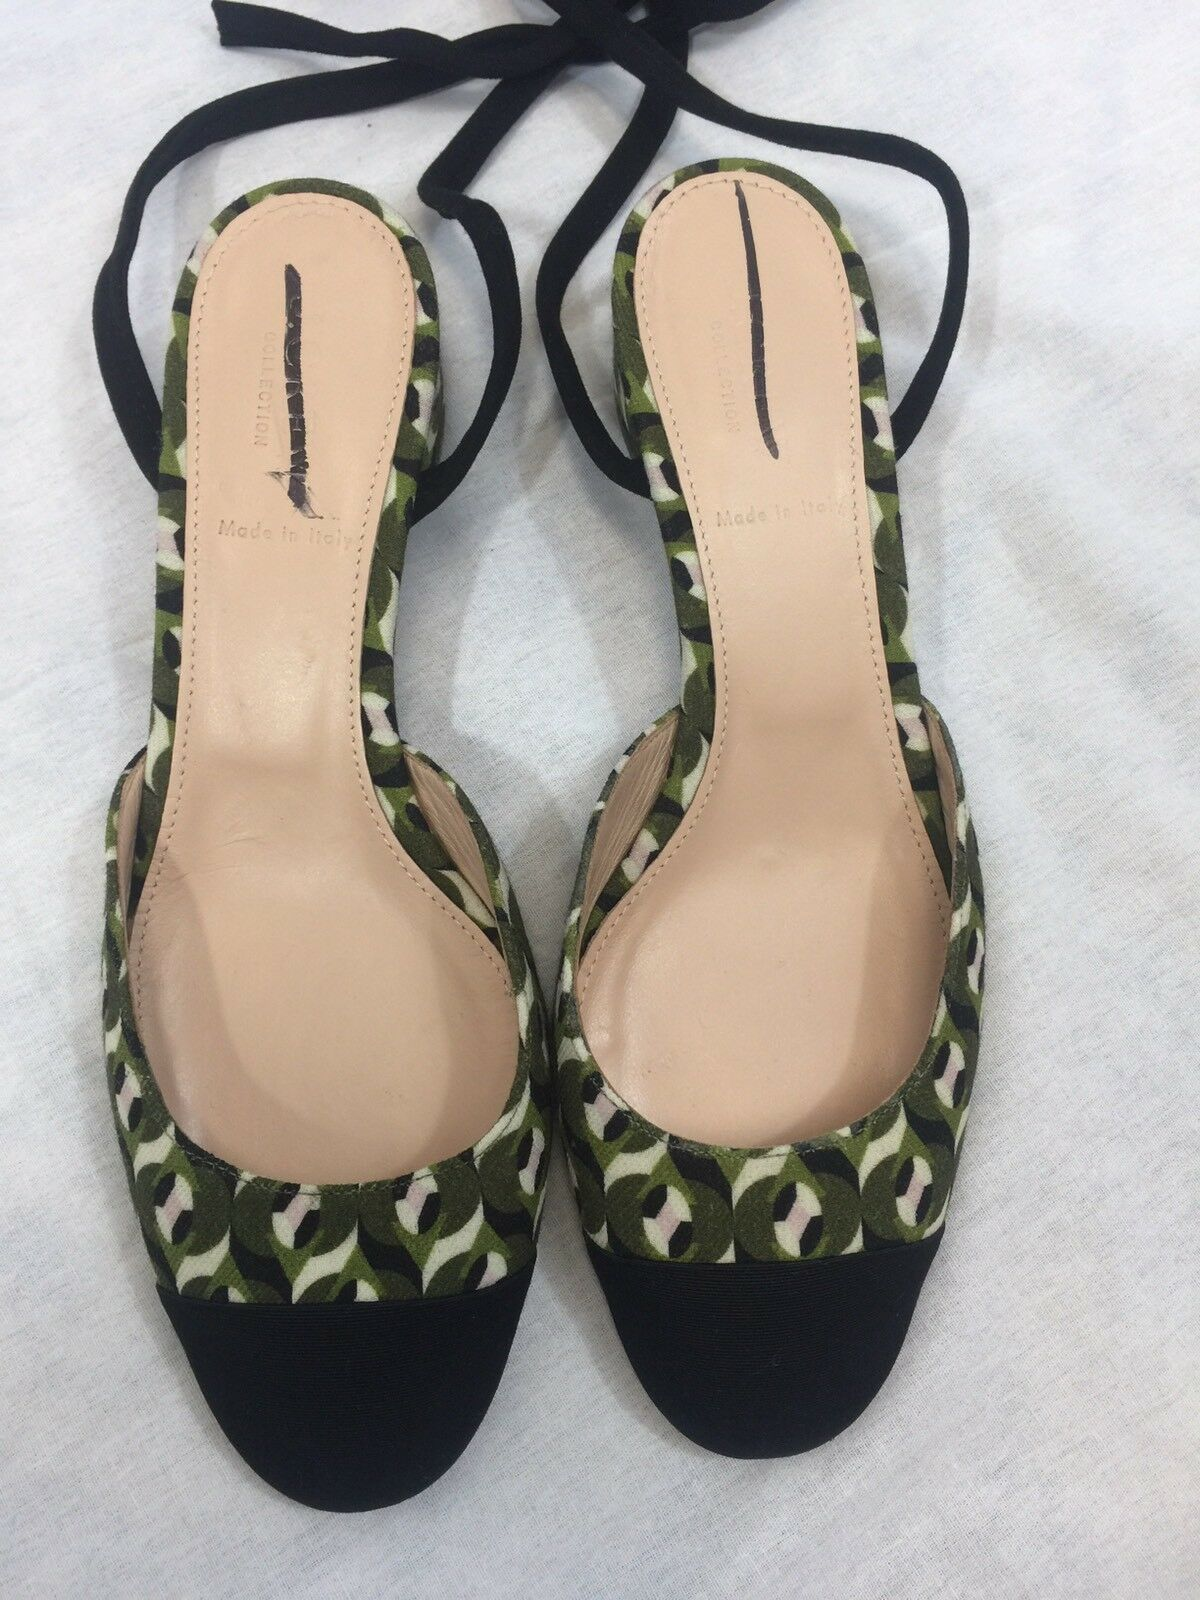 JCrew Collection ankle-wrap heels in Ratti geometric tile print F8013  268 Size9